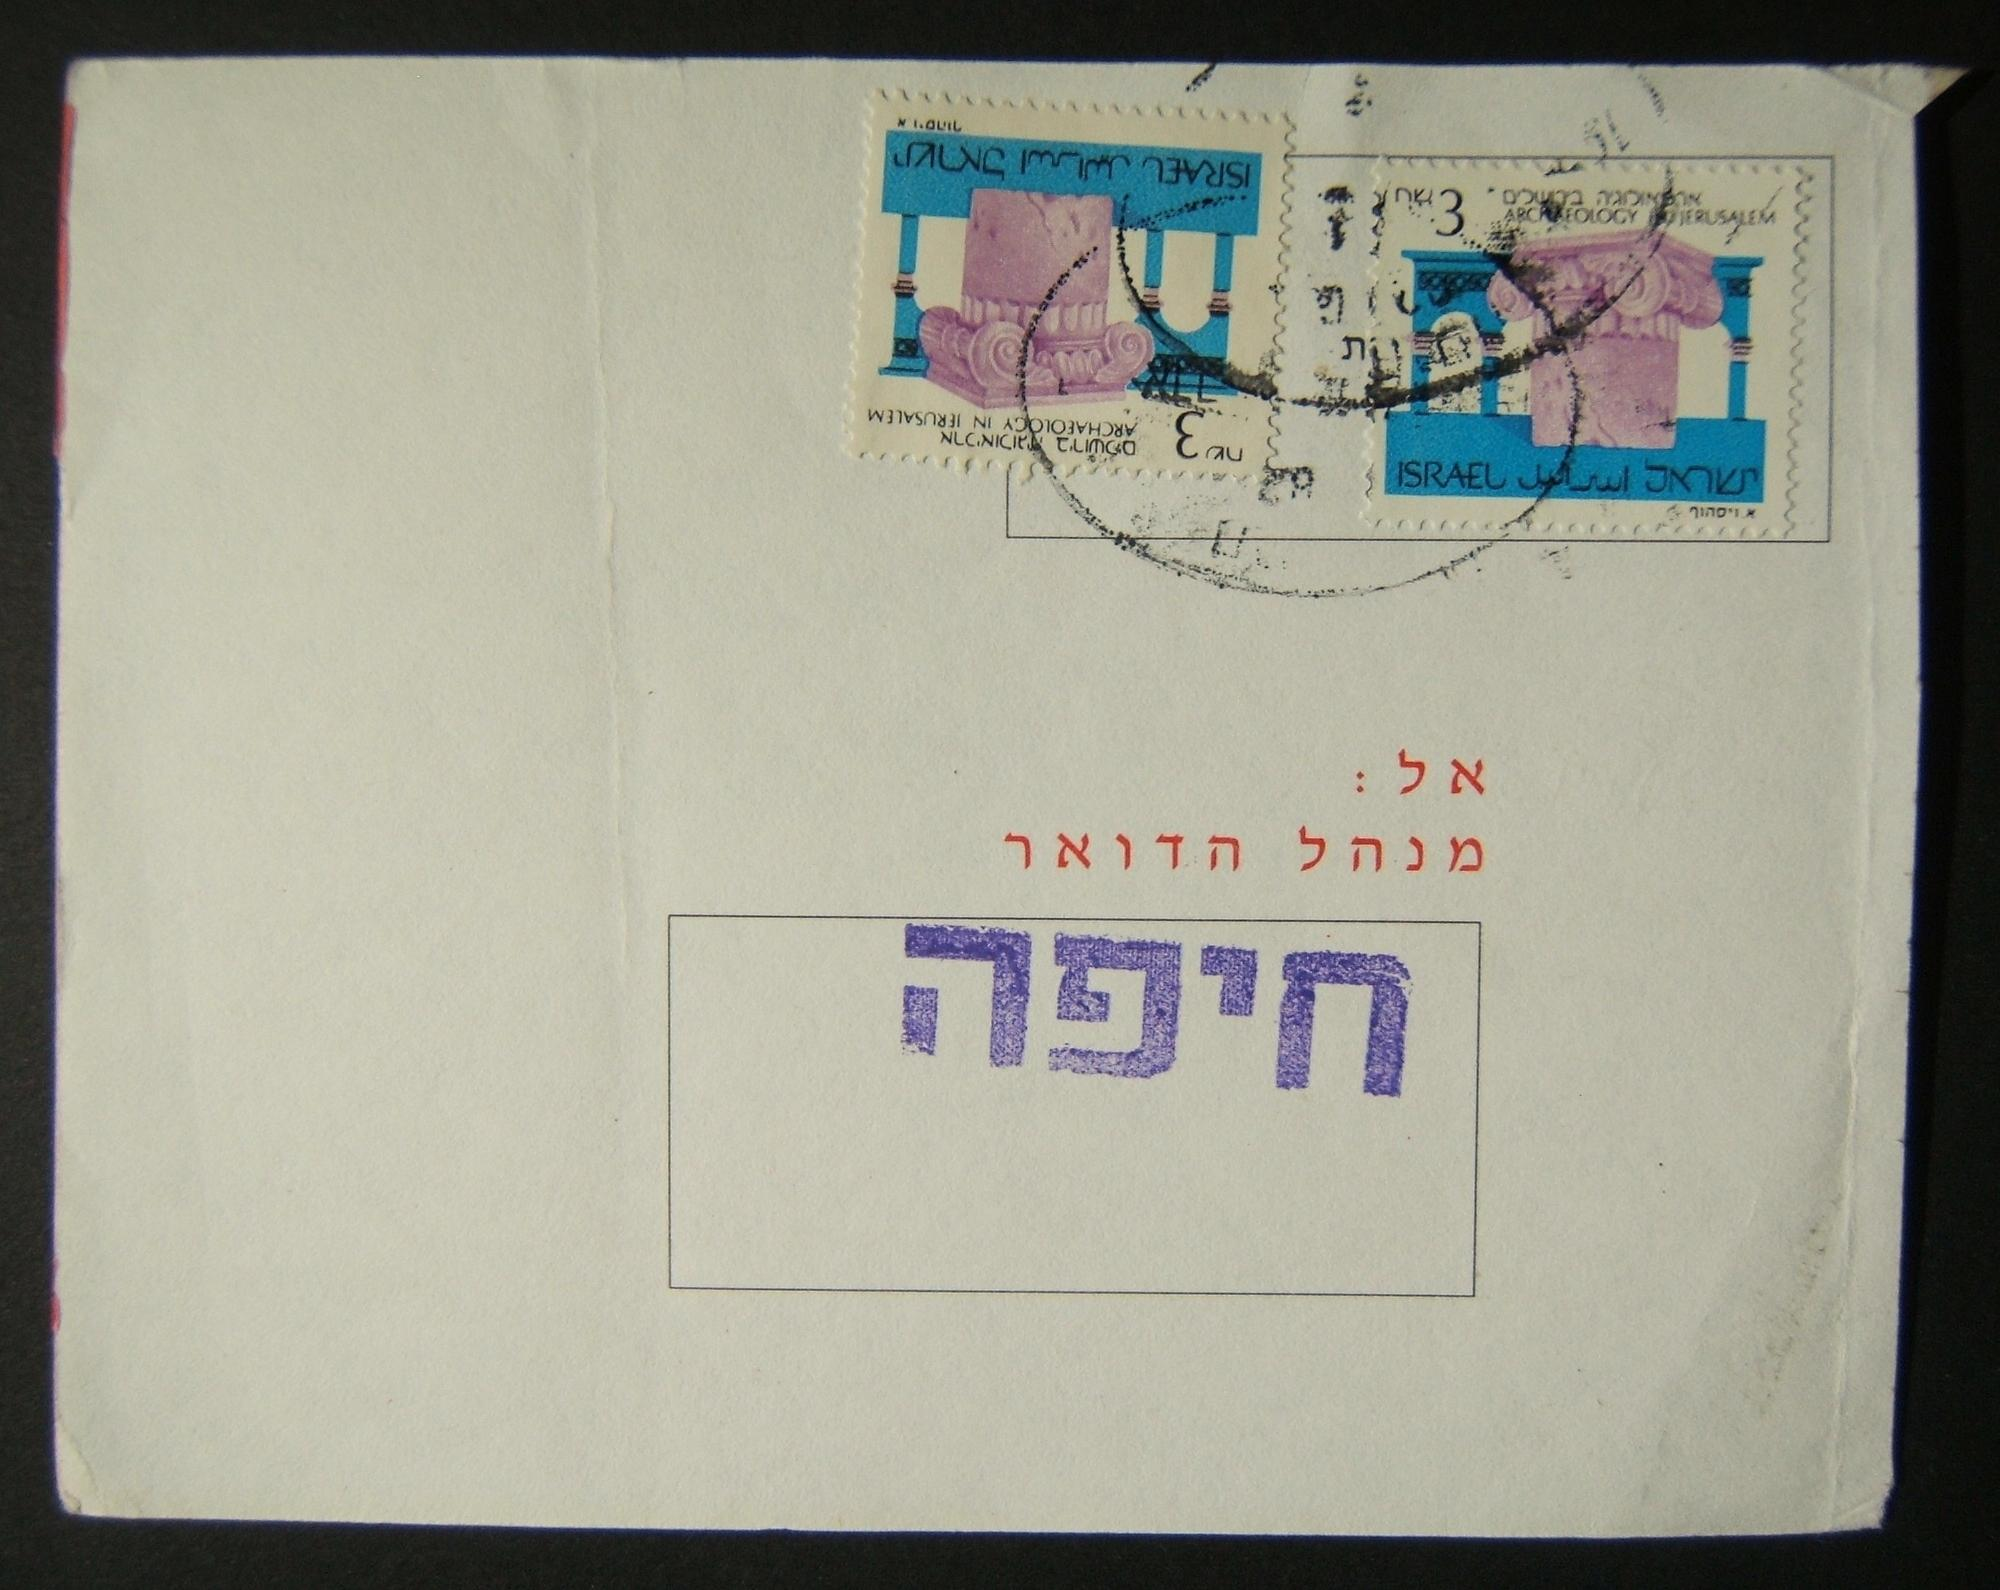 1997 incoming mail franked taxation notice: 16 MAR 1997 HE dated